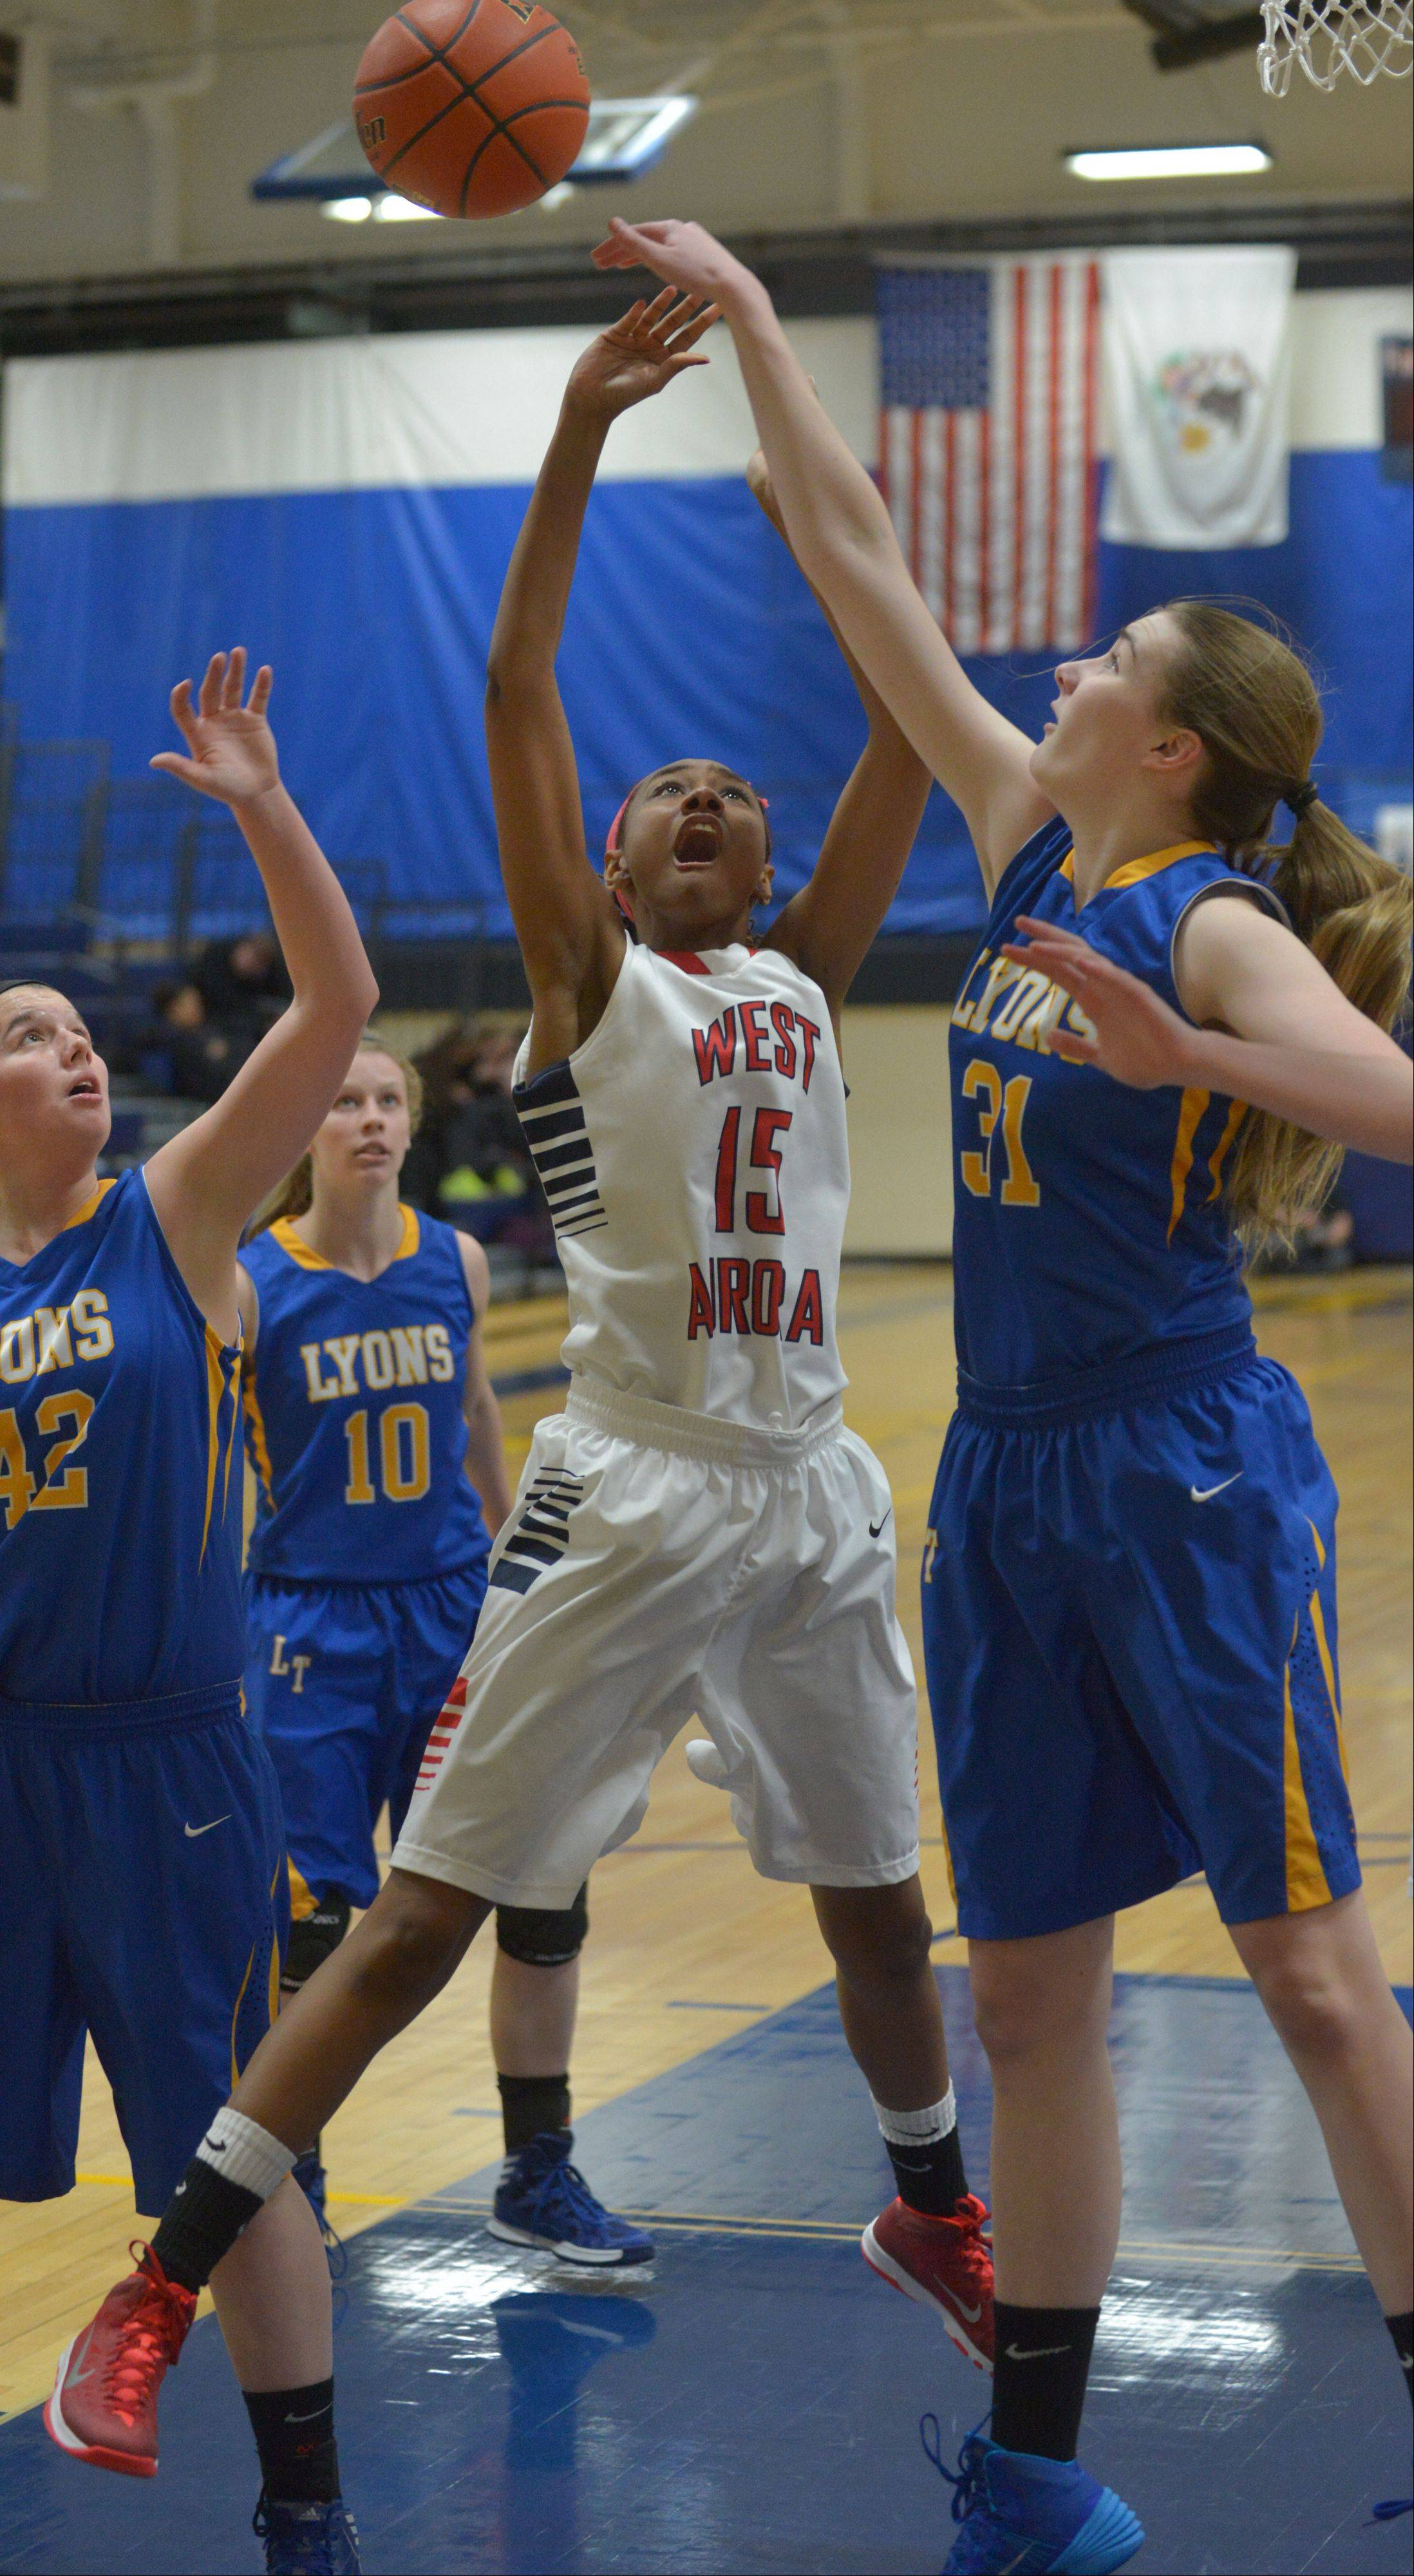 Images from the West Aurora vs. Wheaton North girls basketball game on Thursday, Dec. 26, 2013.